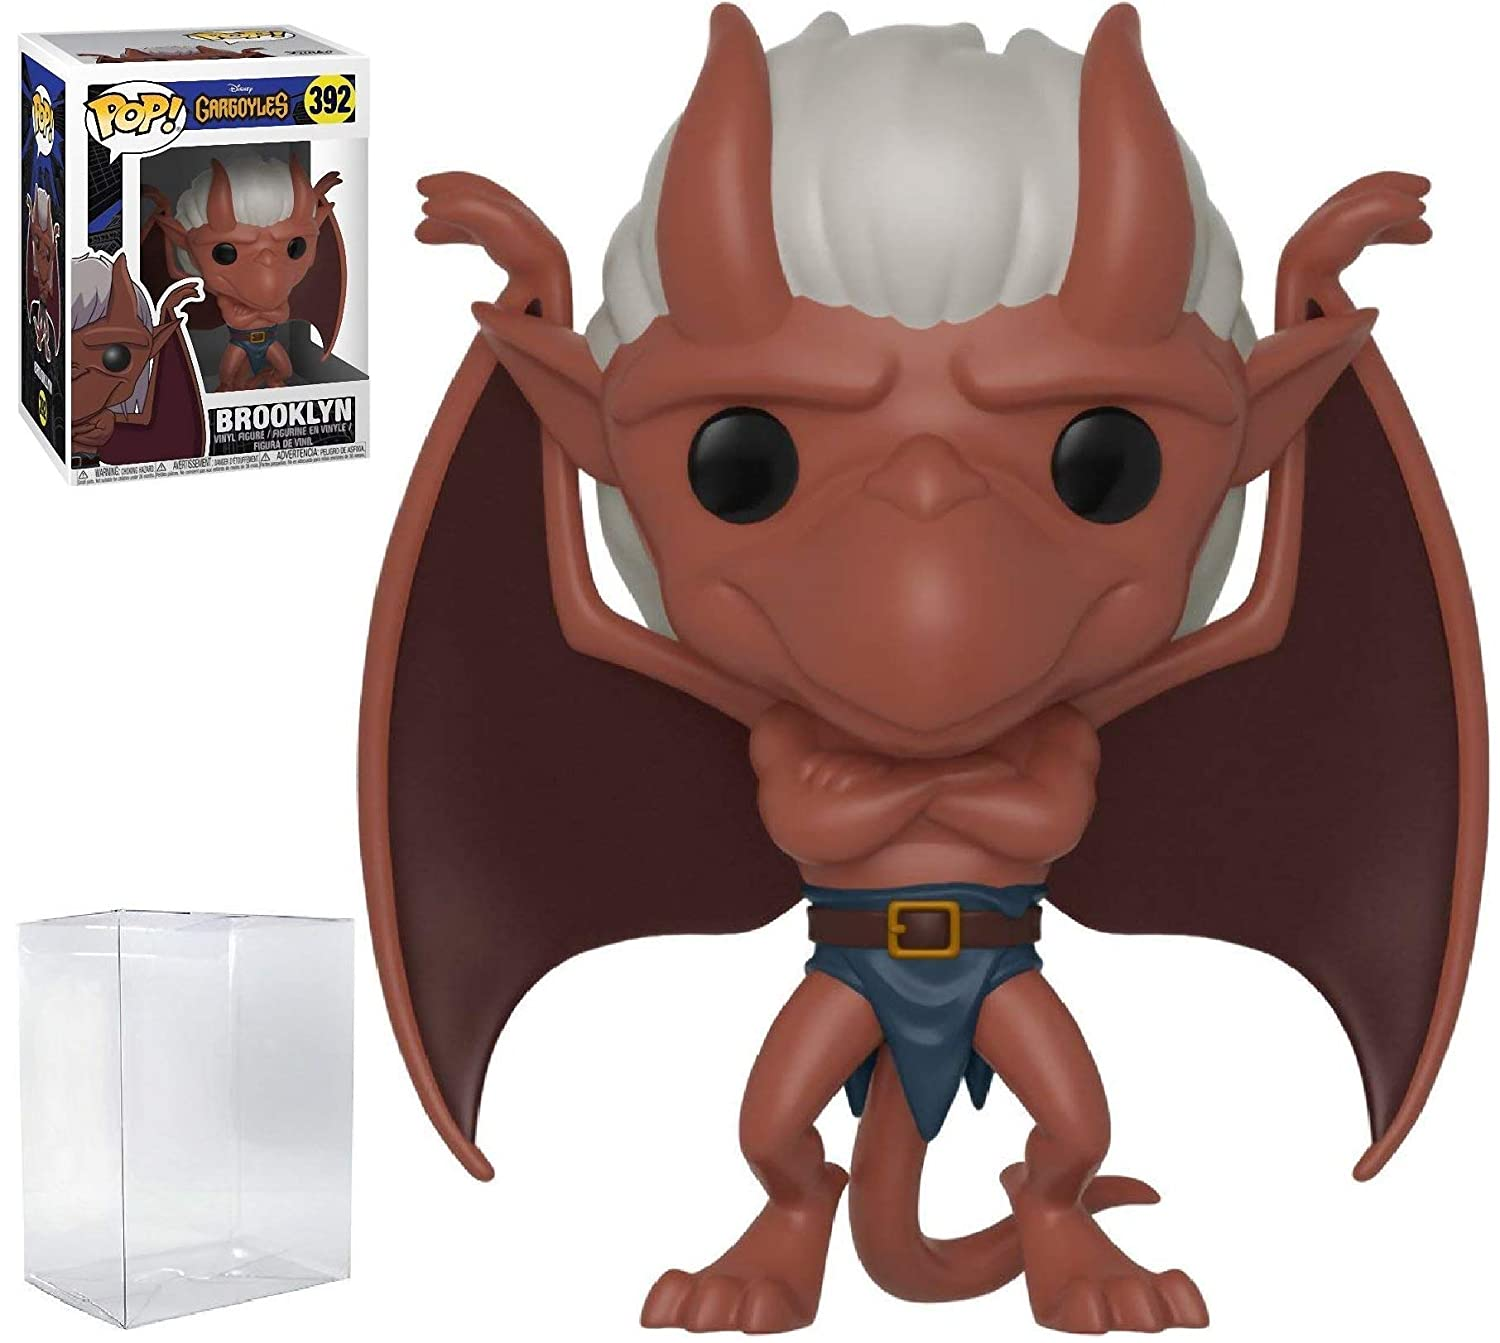 Bundled with Pop Box Protector Case Funko Pop Brooklyn Vinyl Figure Disney: Gargoyles